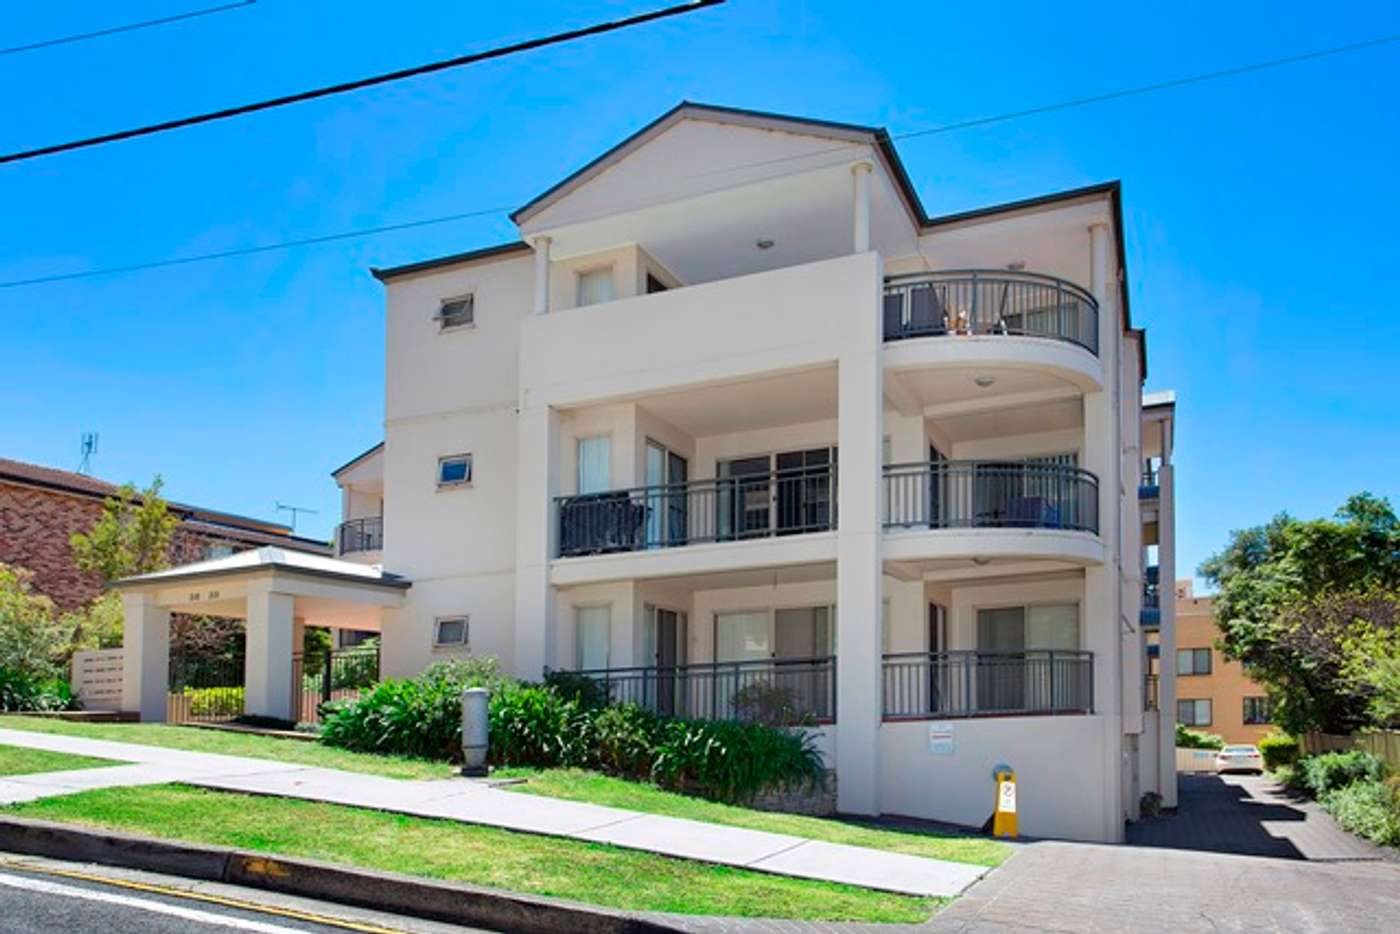 Main view of Homely apartment listing, 4/36-38 Loftus Street, Wollongong NSW 2500